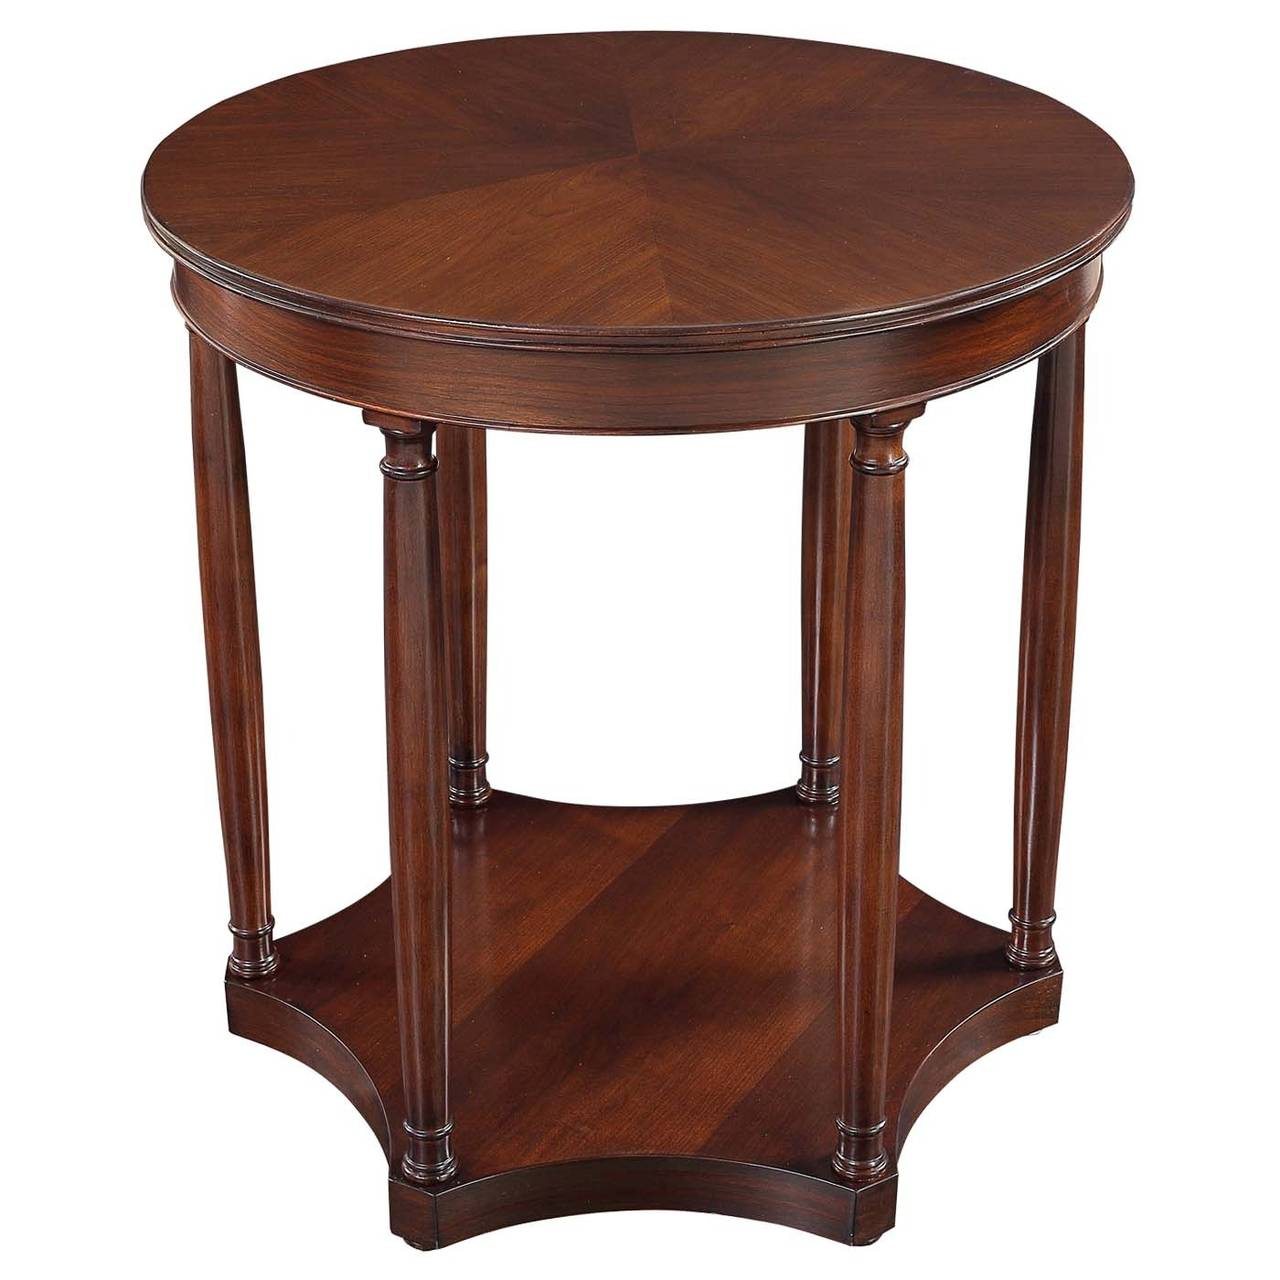 Large column side table in walnut at 1stdibs for Table column